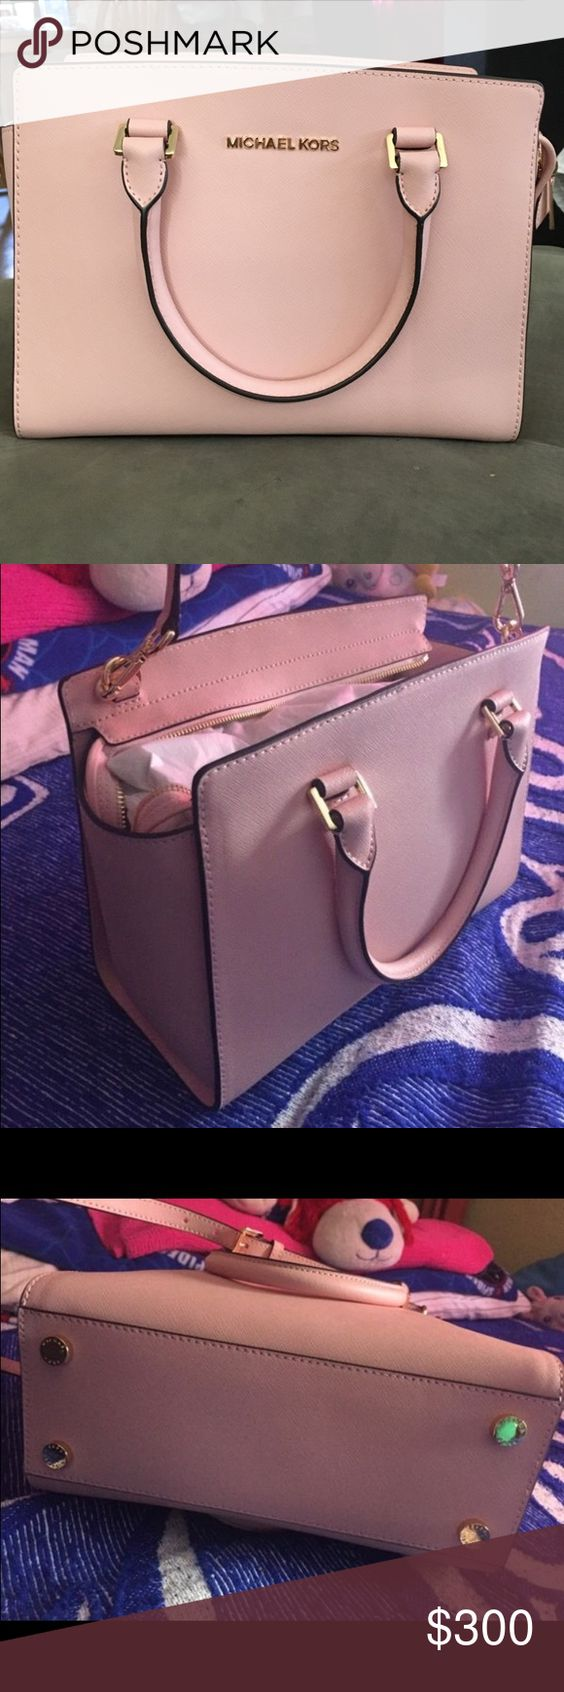 Michael Kors Md Tz Satchel Pastel Pink Leather Used 3 Times For A